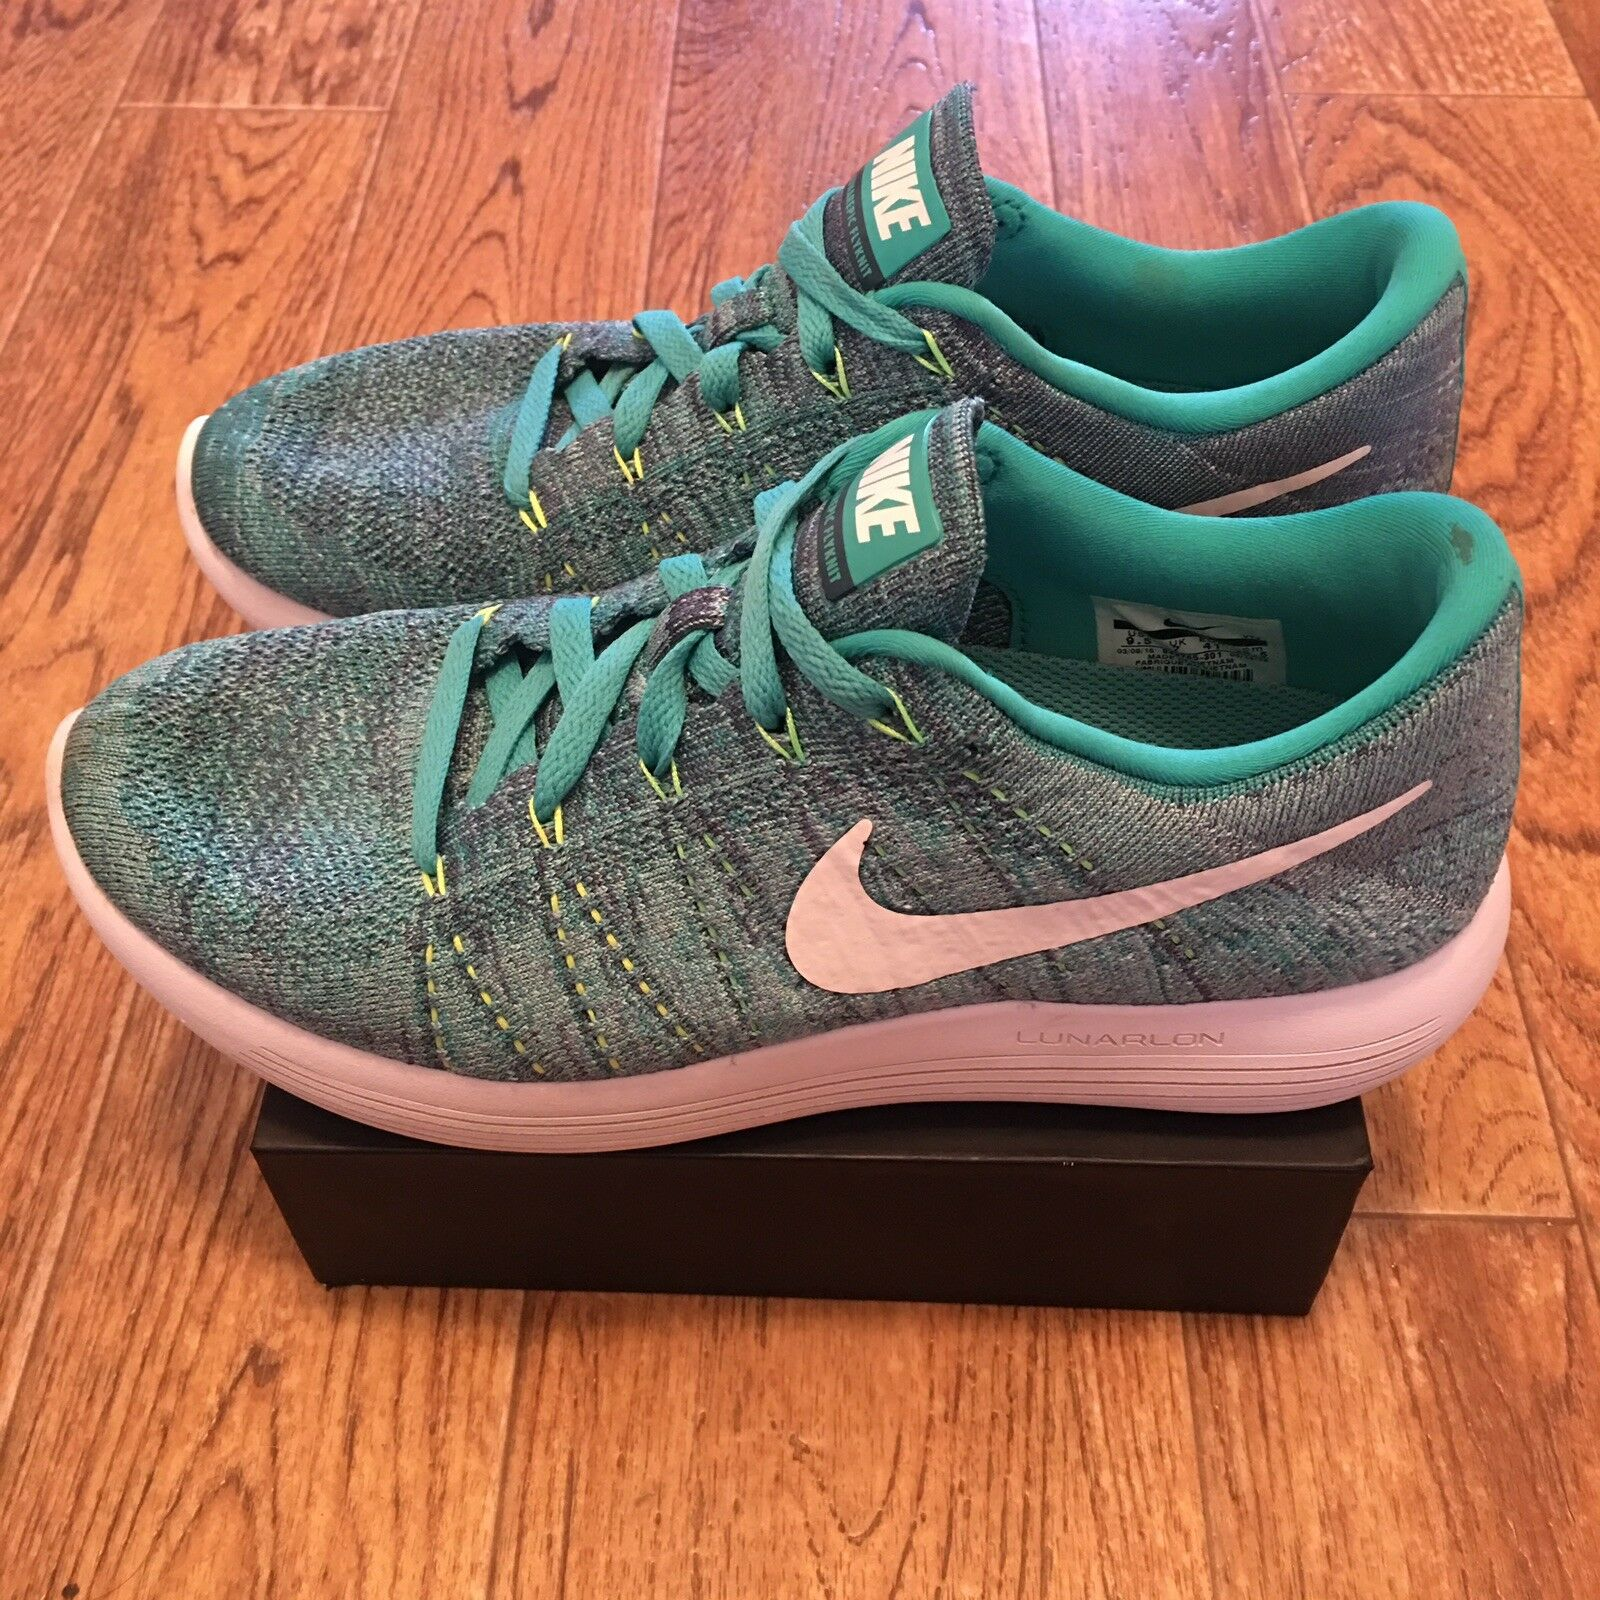 Women's Nike Lunarepic Low Flyknit (843765 301) Jade White US Size 9.5